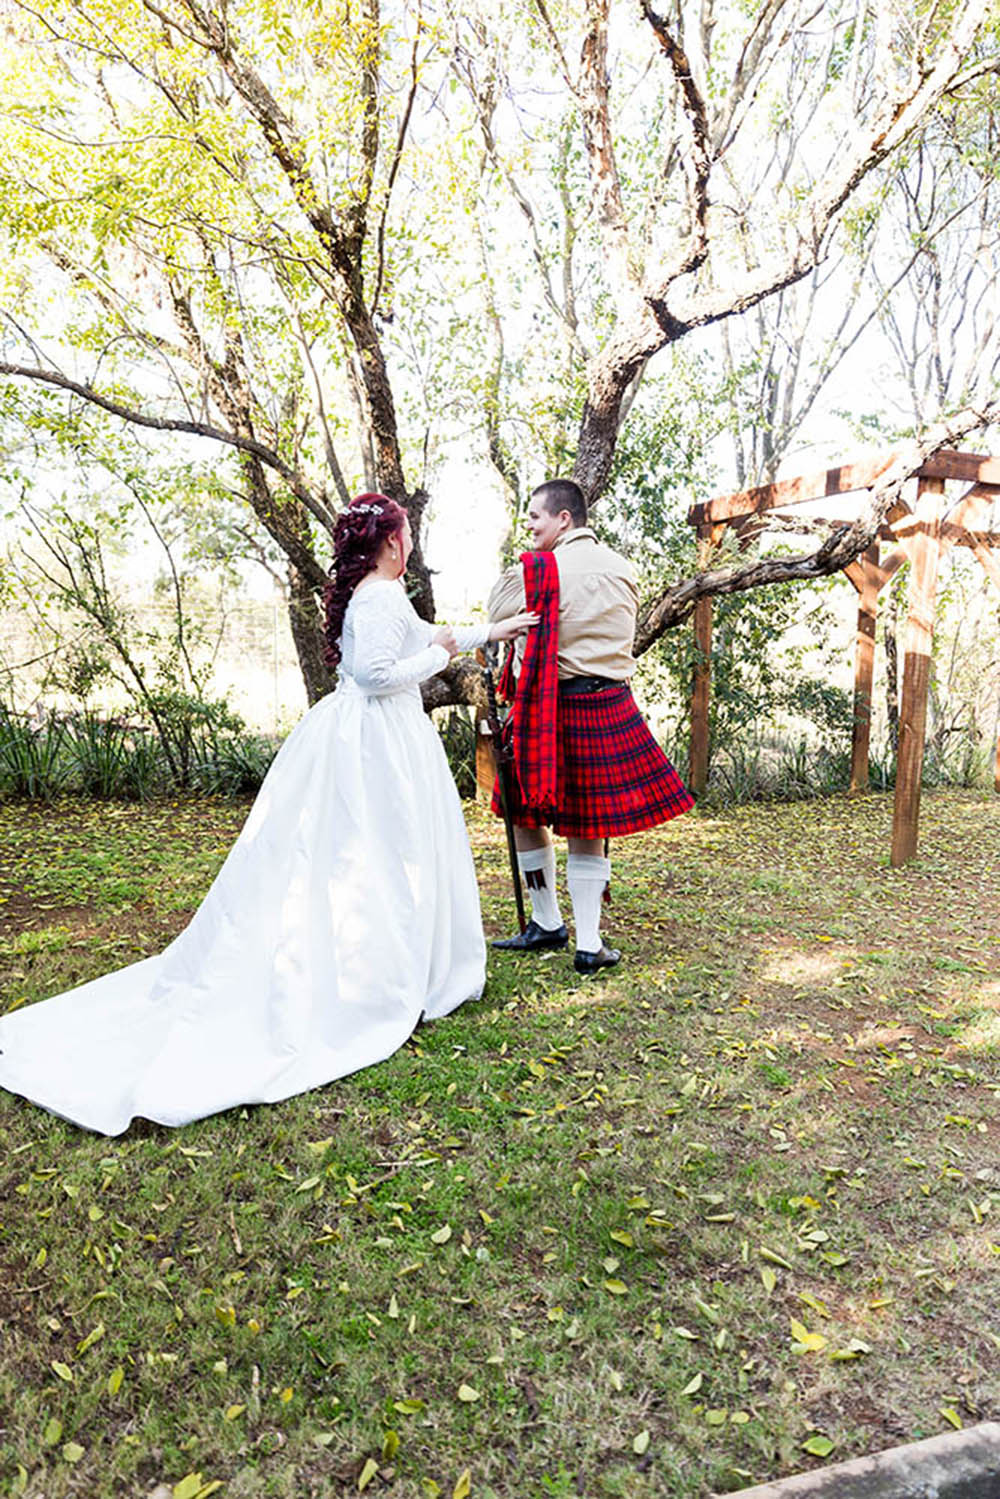 medieval-themed-wedding-medieval-wedding-dgr-photography-castle-wedding-52